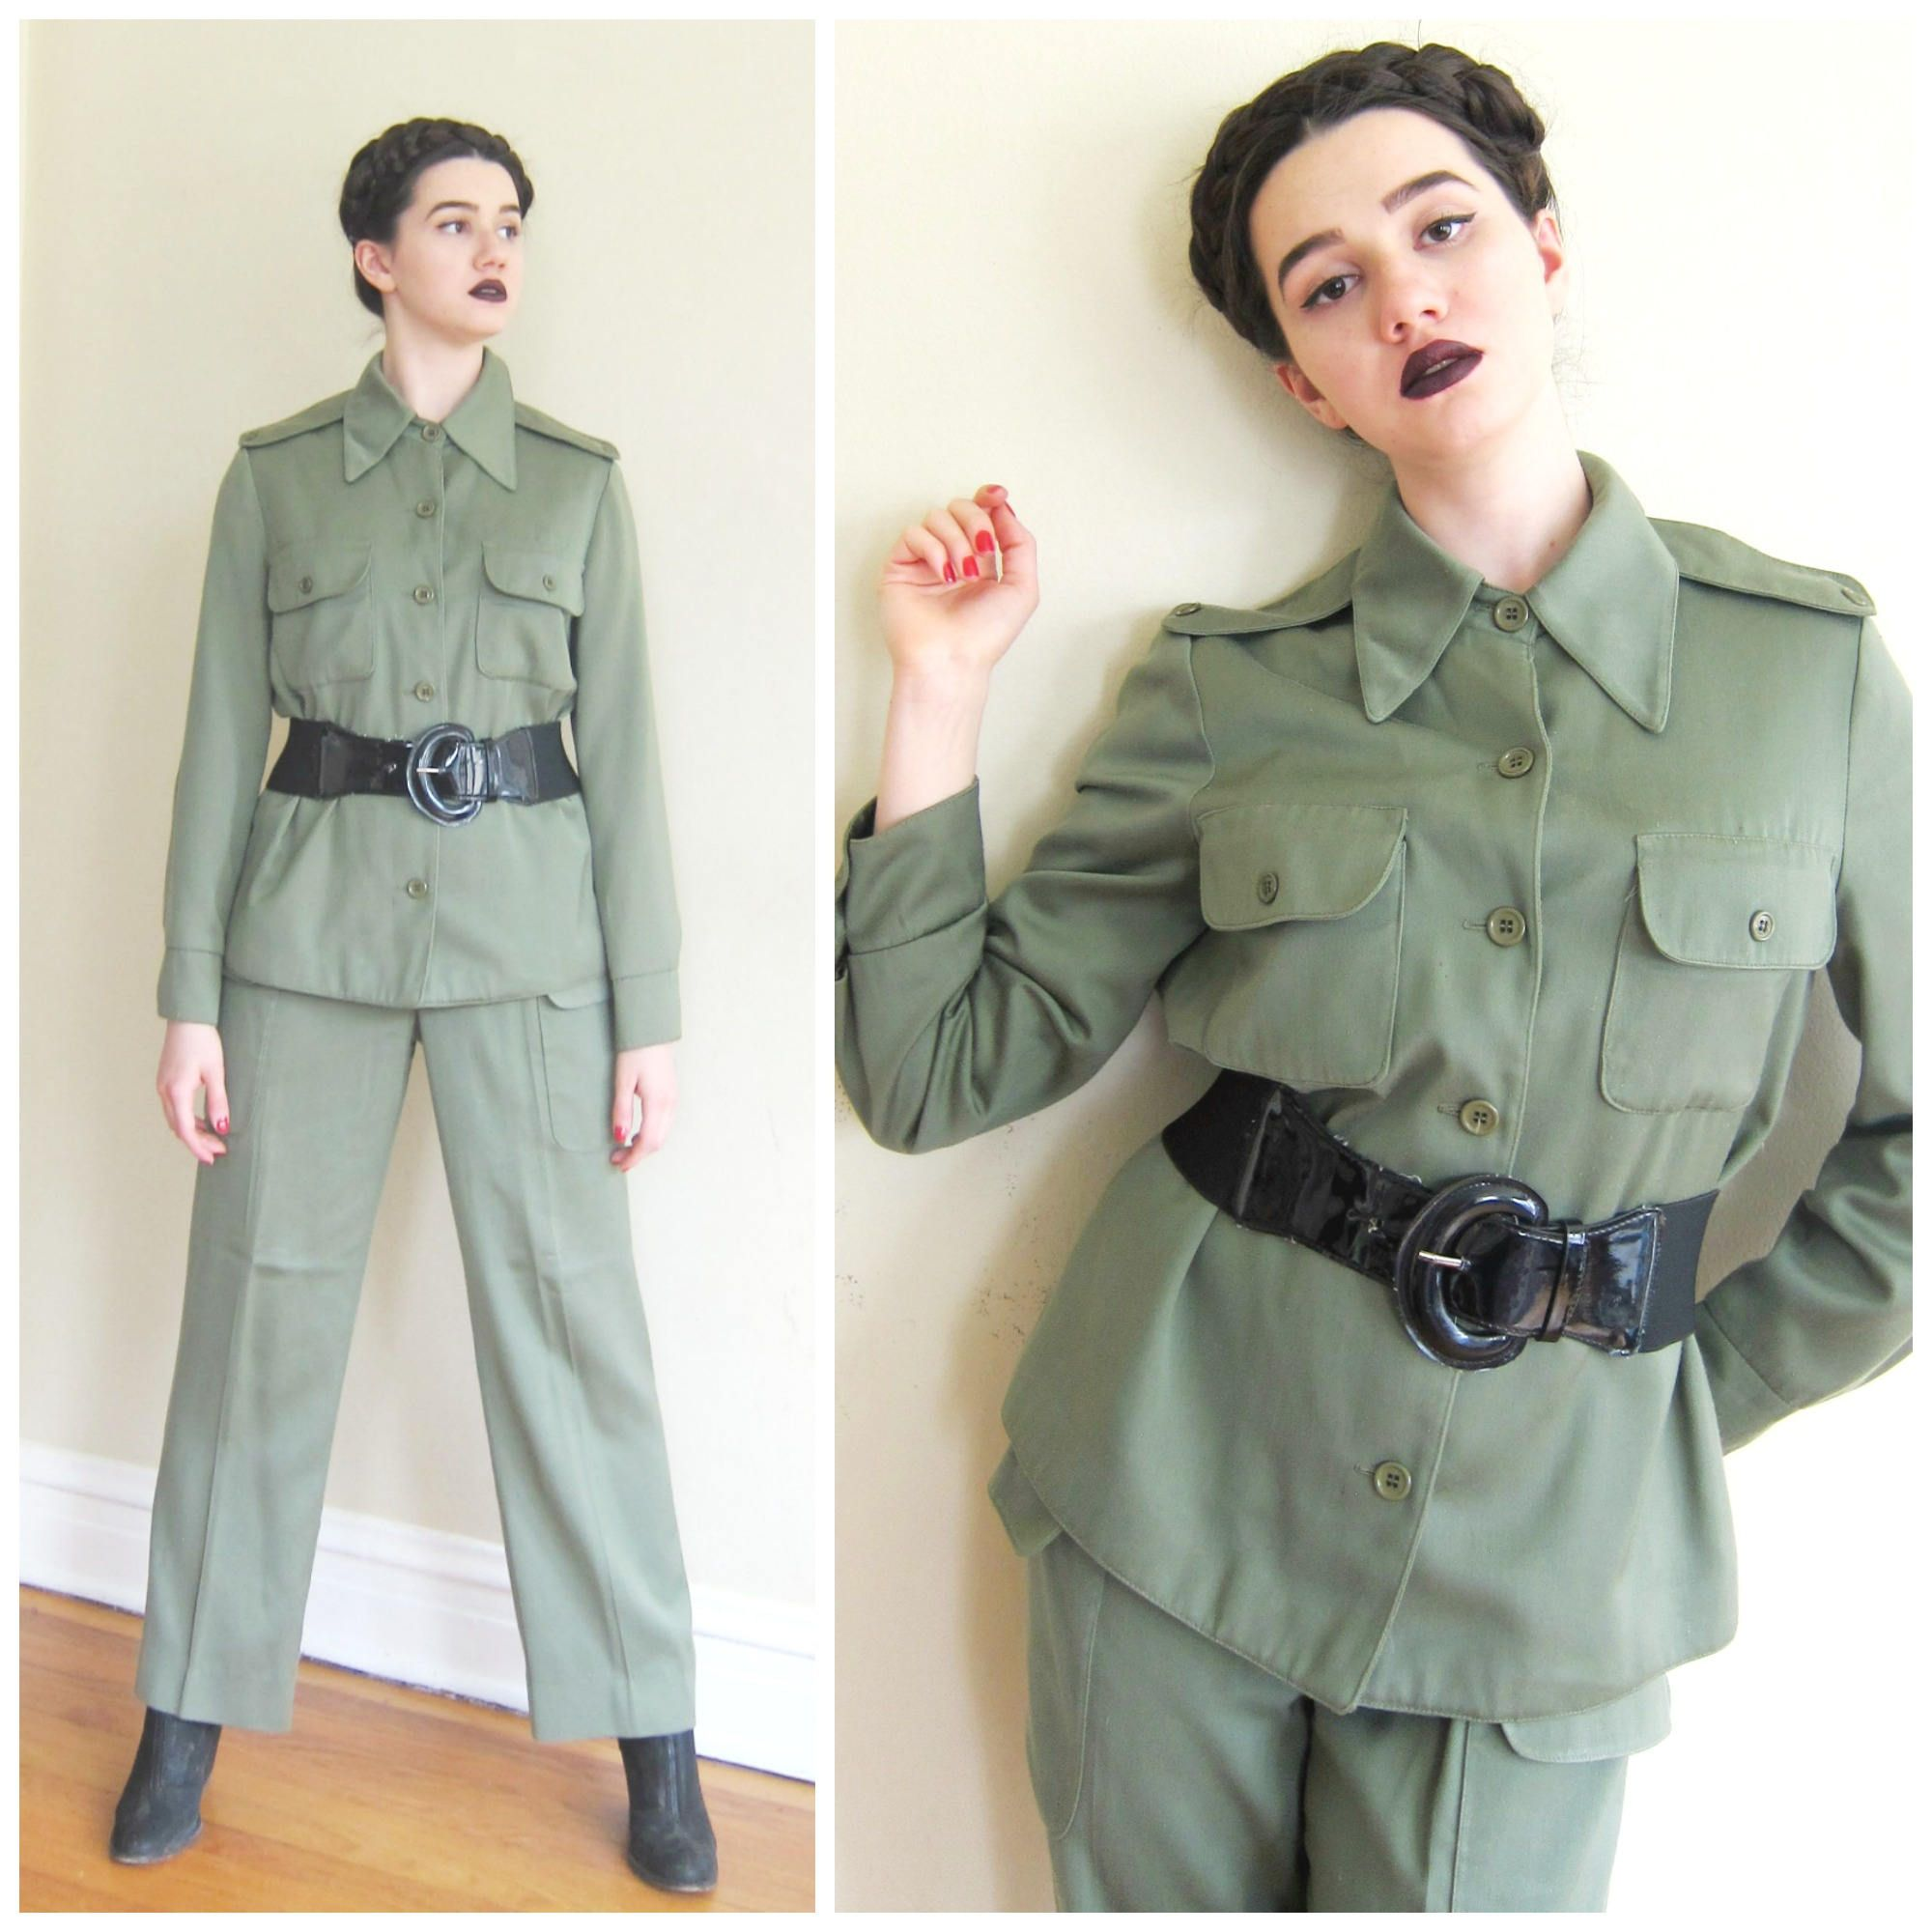 e79a45a8 Vintage 1980s 1970s Olive Green Military Pants And Jacket / 80s 70s Women's Army  Fatigues Ensemble by BasyaBerkman on Etsy